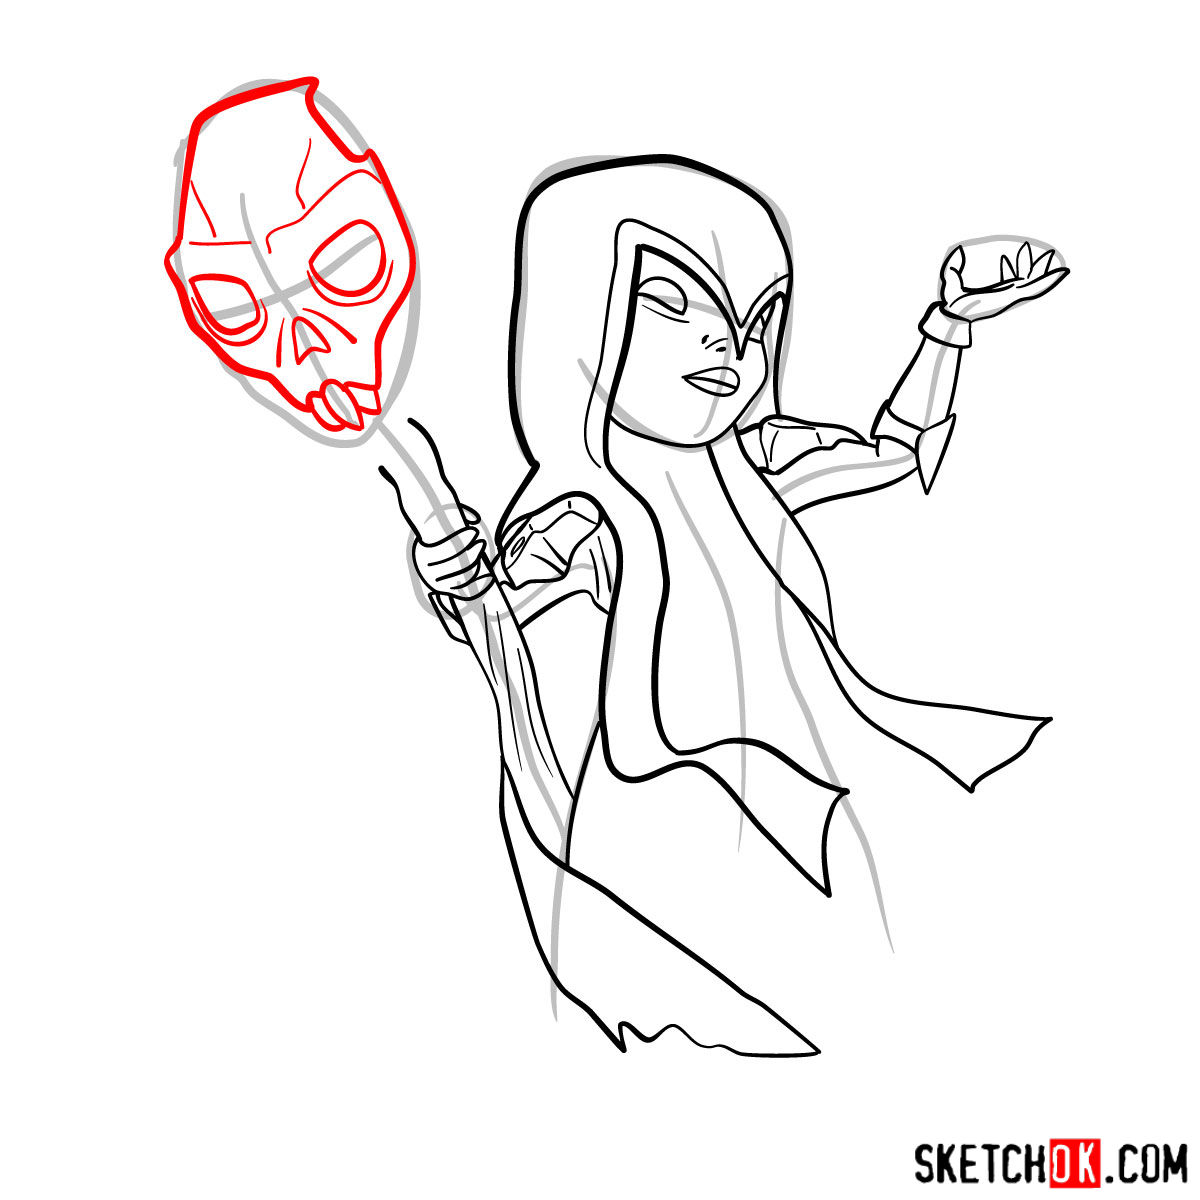 How to draw Witch (Skeleton) from Clash of Clans - step 10